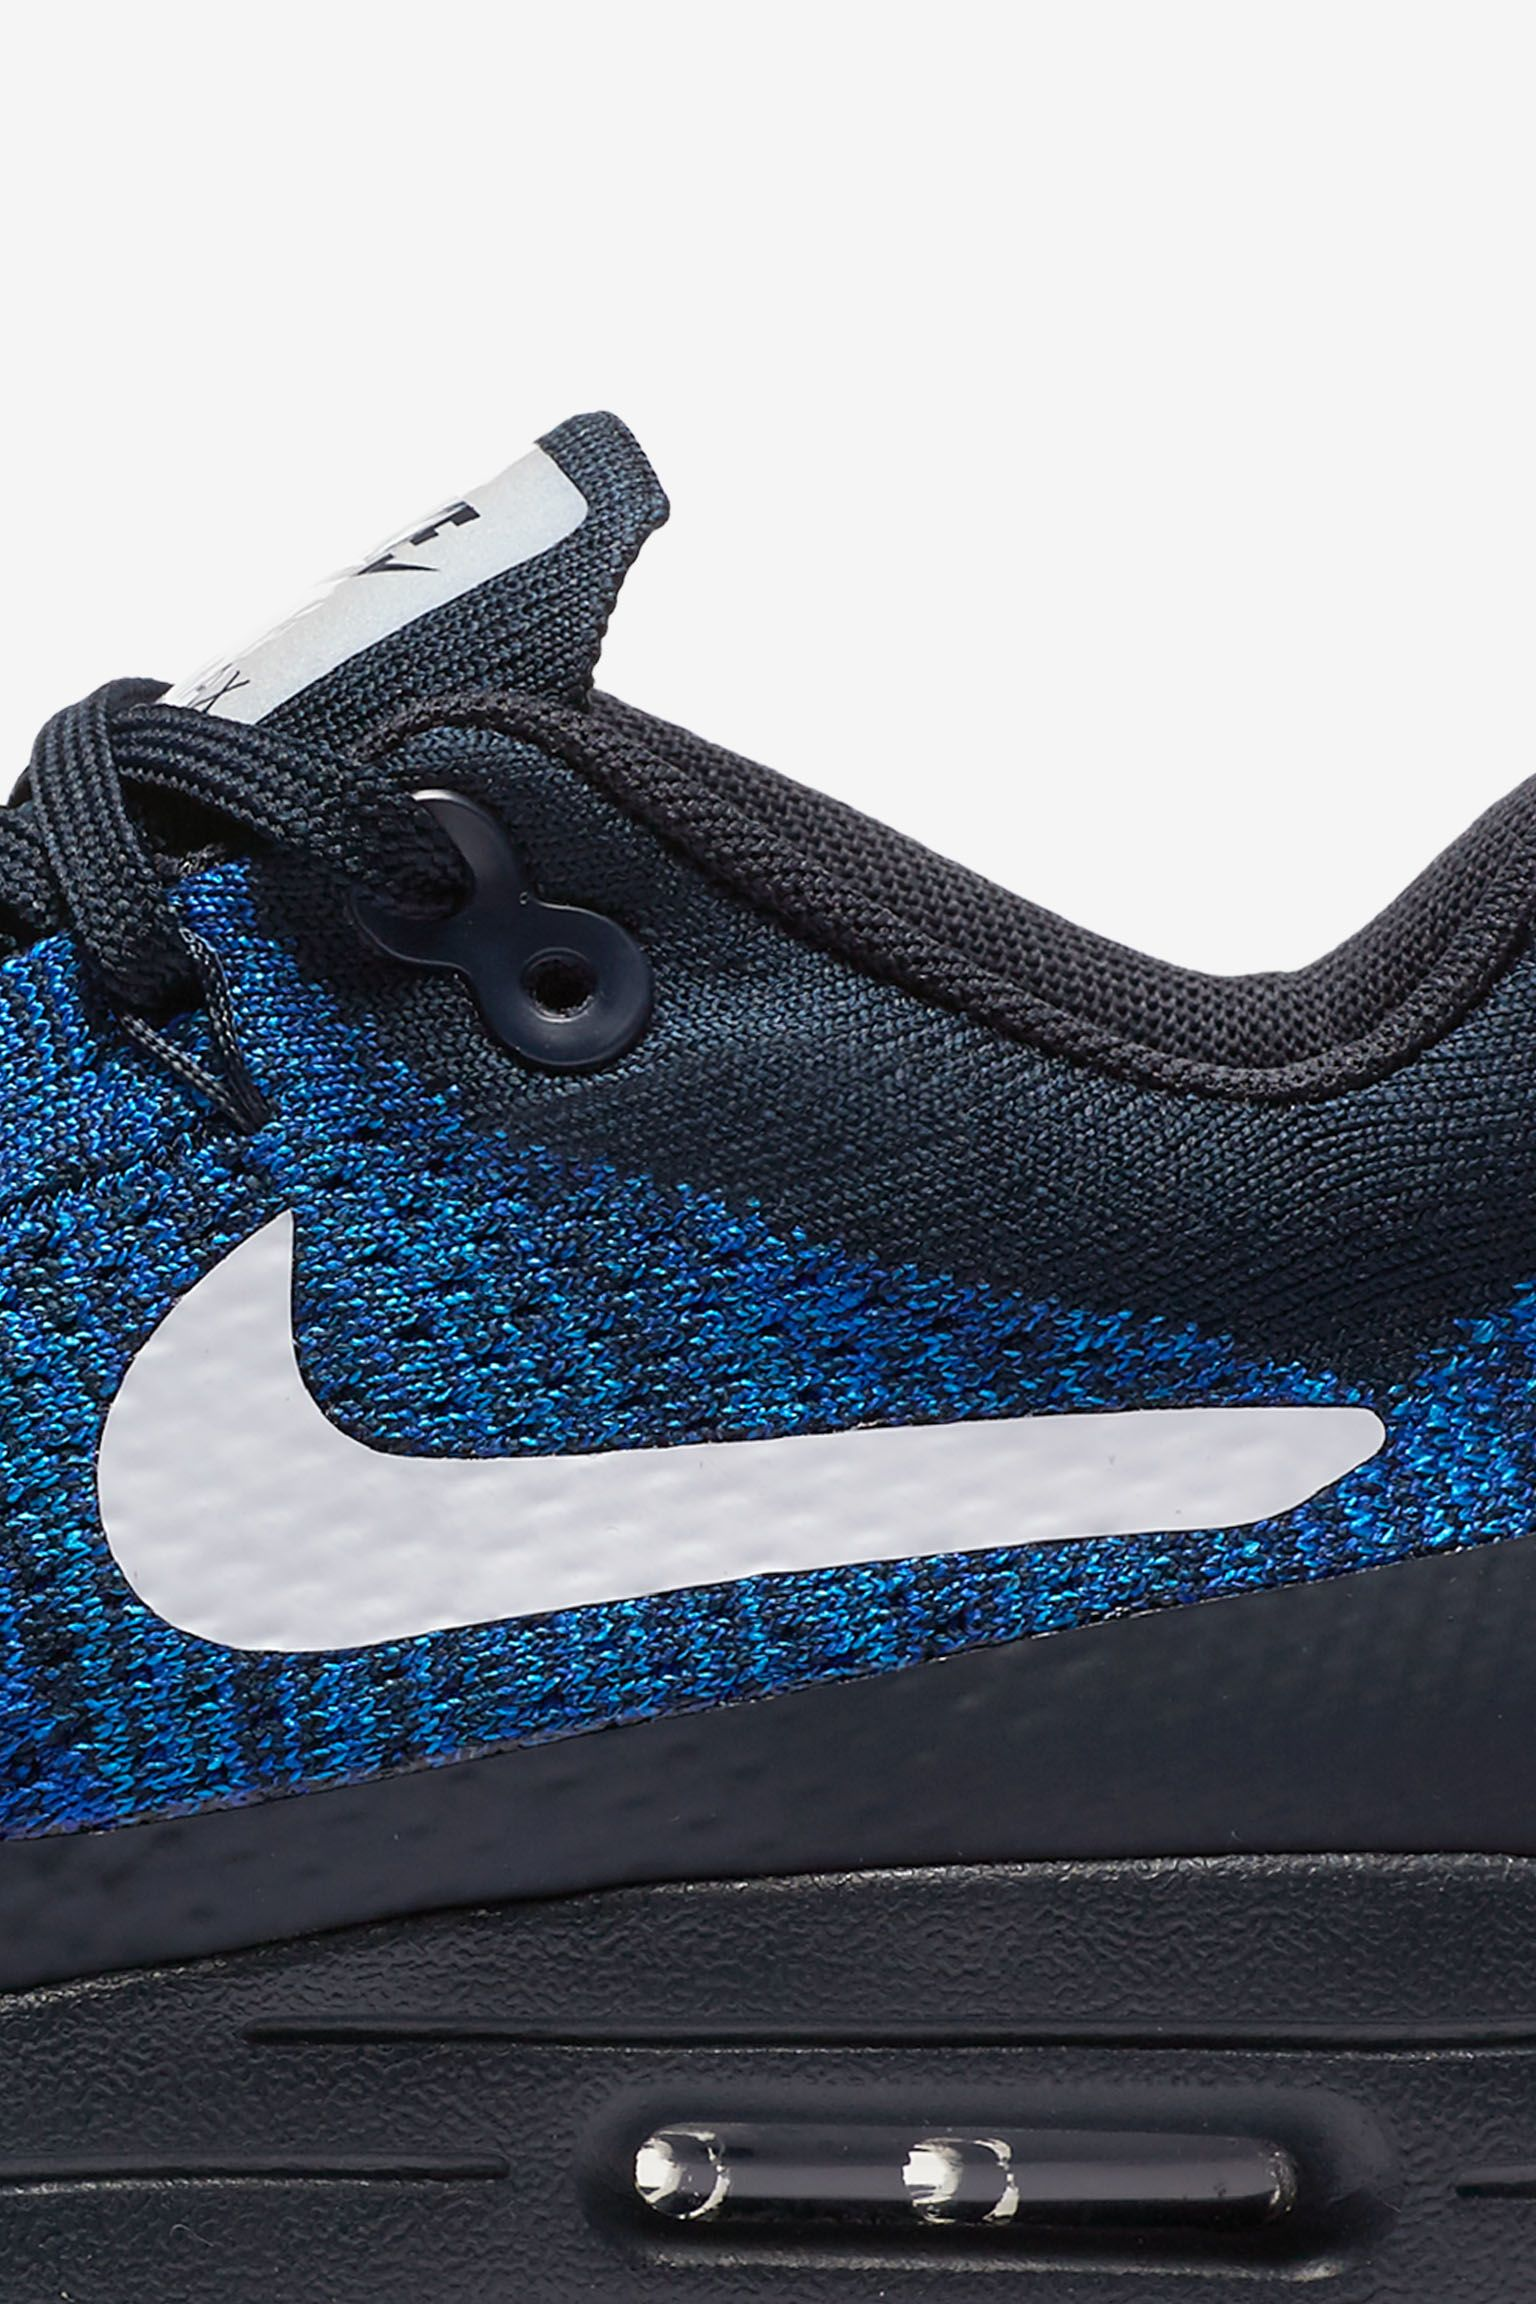 National Air: Women's Nike Air Max 1 Ultra Flyknit 'Racer Blue'